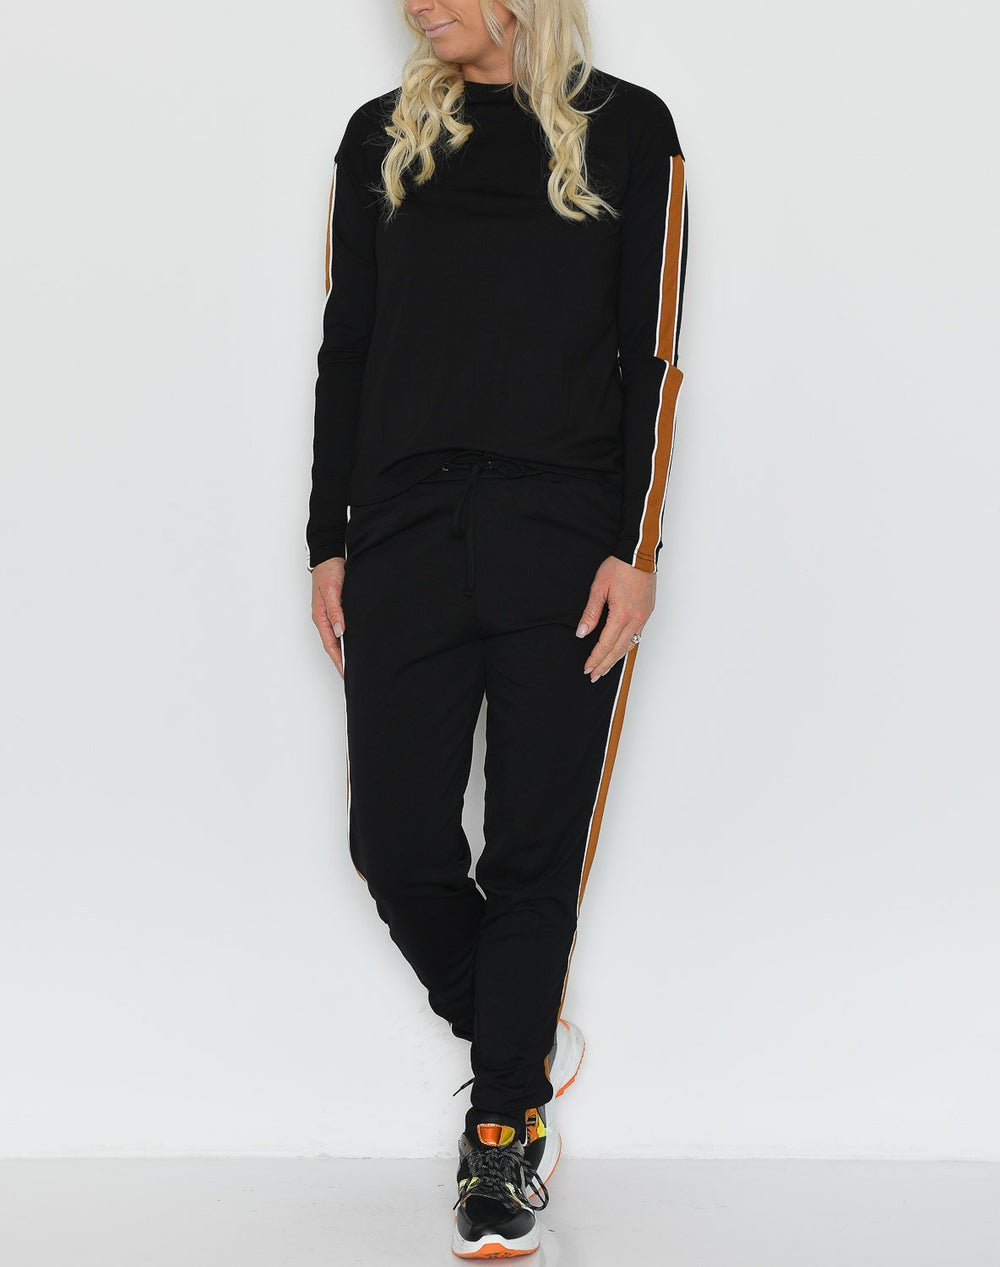 Jamilla sweatpants black/mustard - Online-Mode